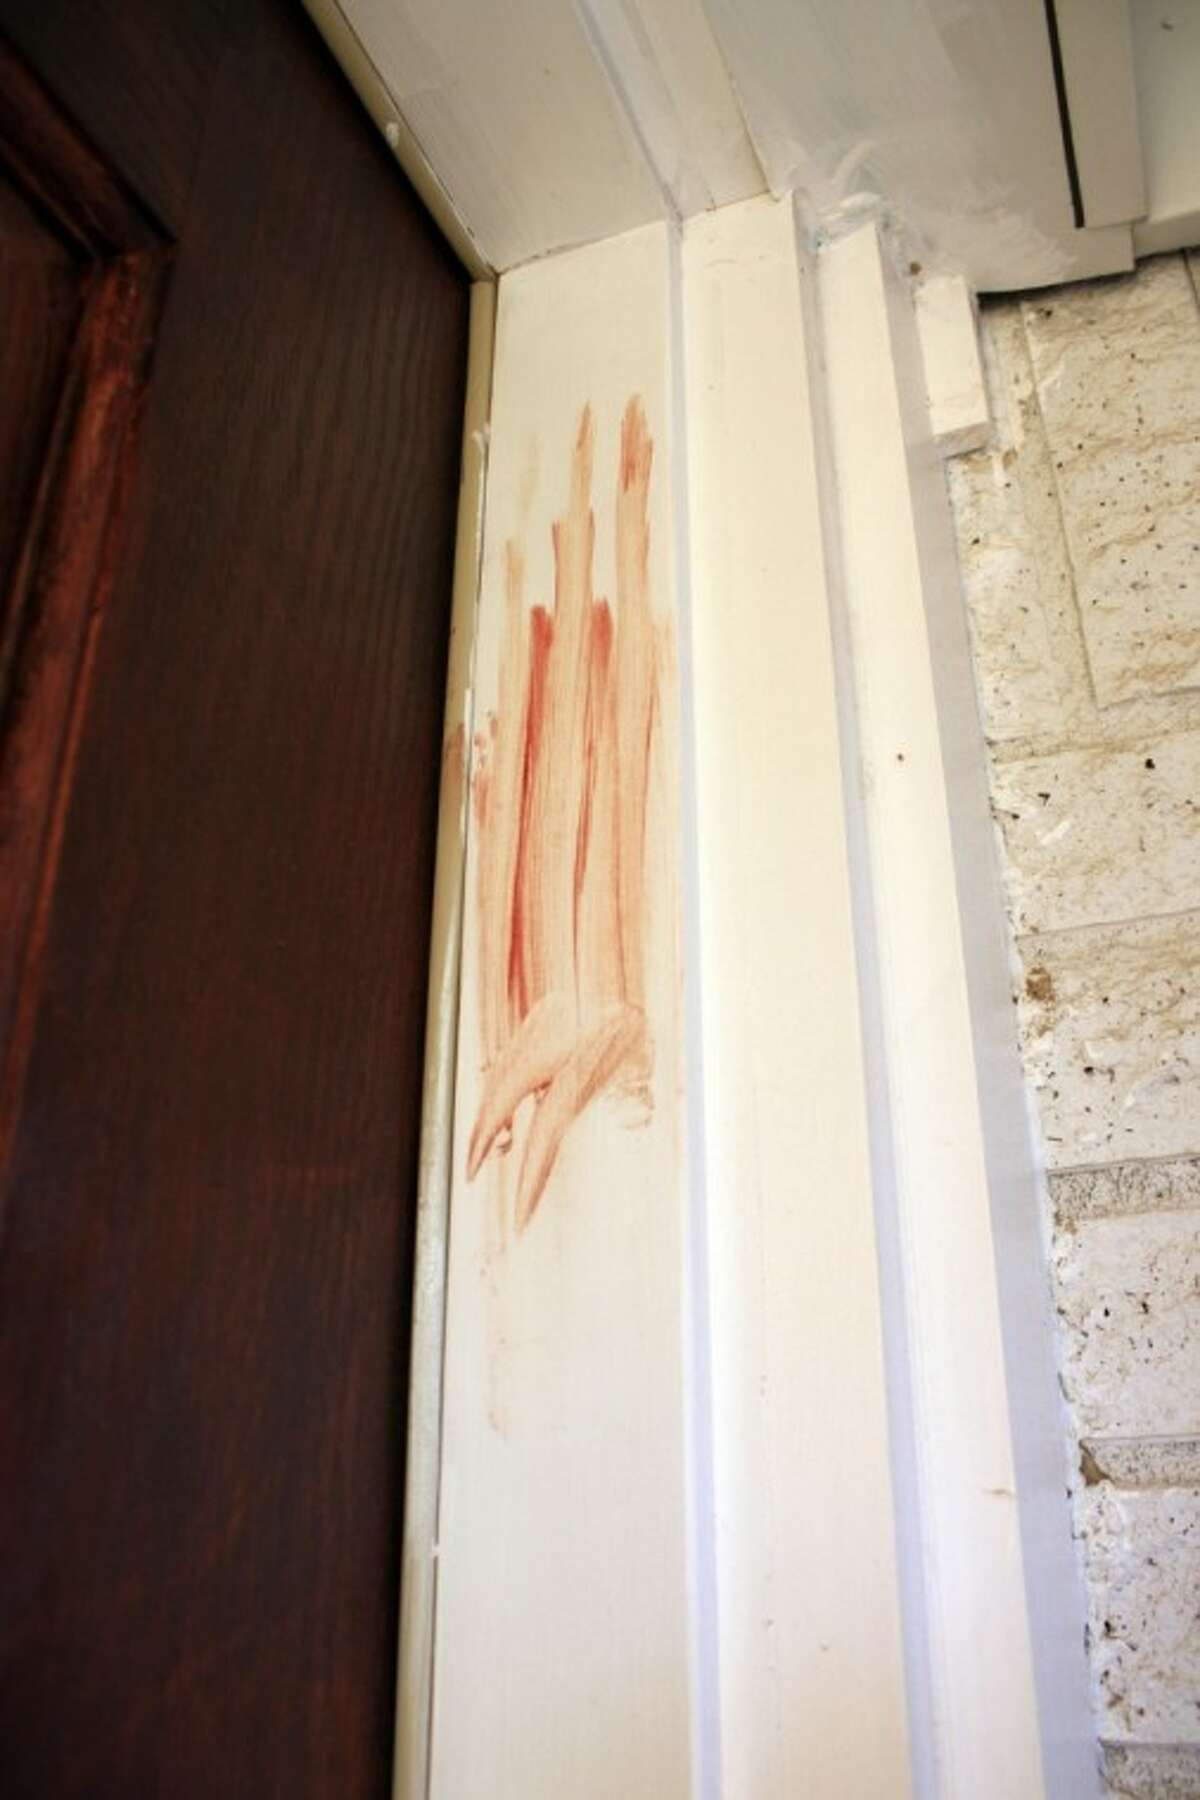 Blood is smeared on the door frame at a home in Richland Hills, Texas, where Brent Troy Bartel is accused of using a box cutter to carve a pentagram in his six-year-old son's back on Wednesday. Bartel was charged with aggravated assault with a deadly weapon and was jailed in lieu of $500,000 bond.